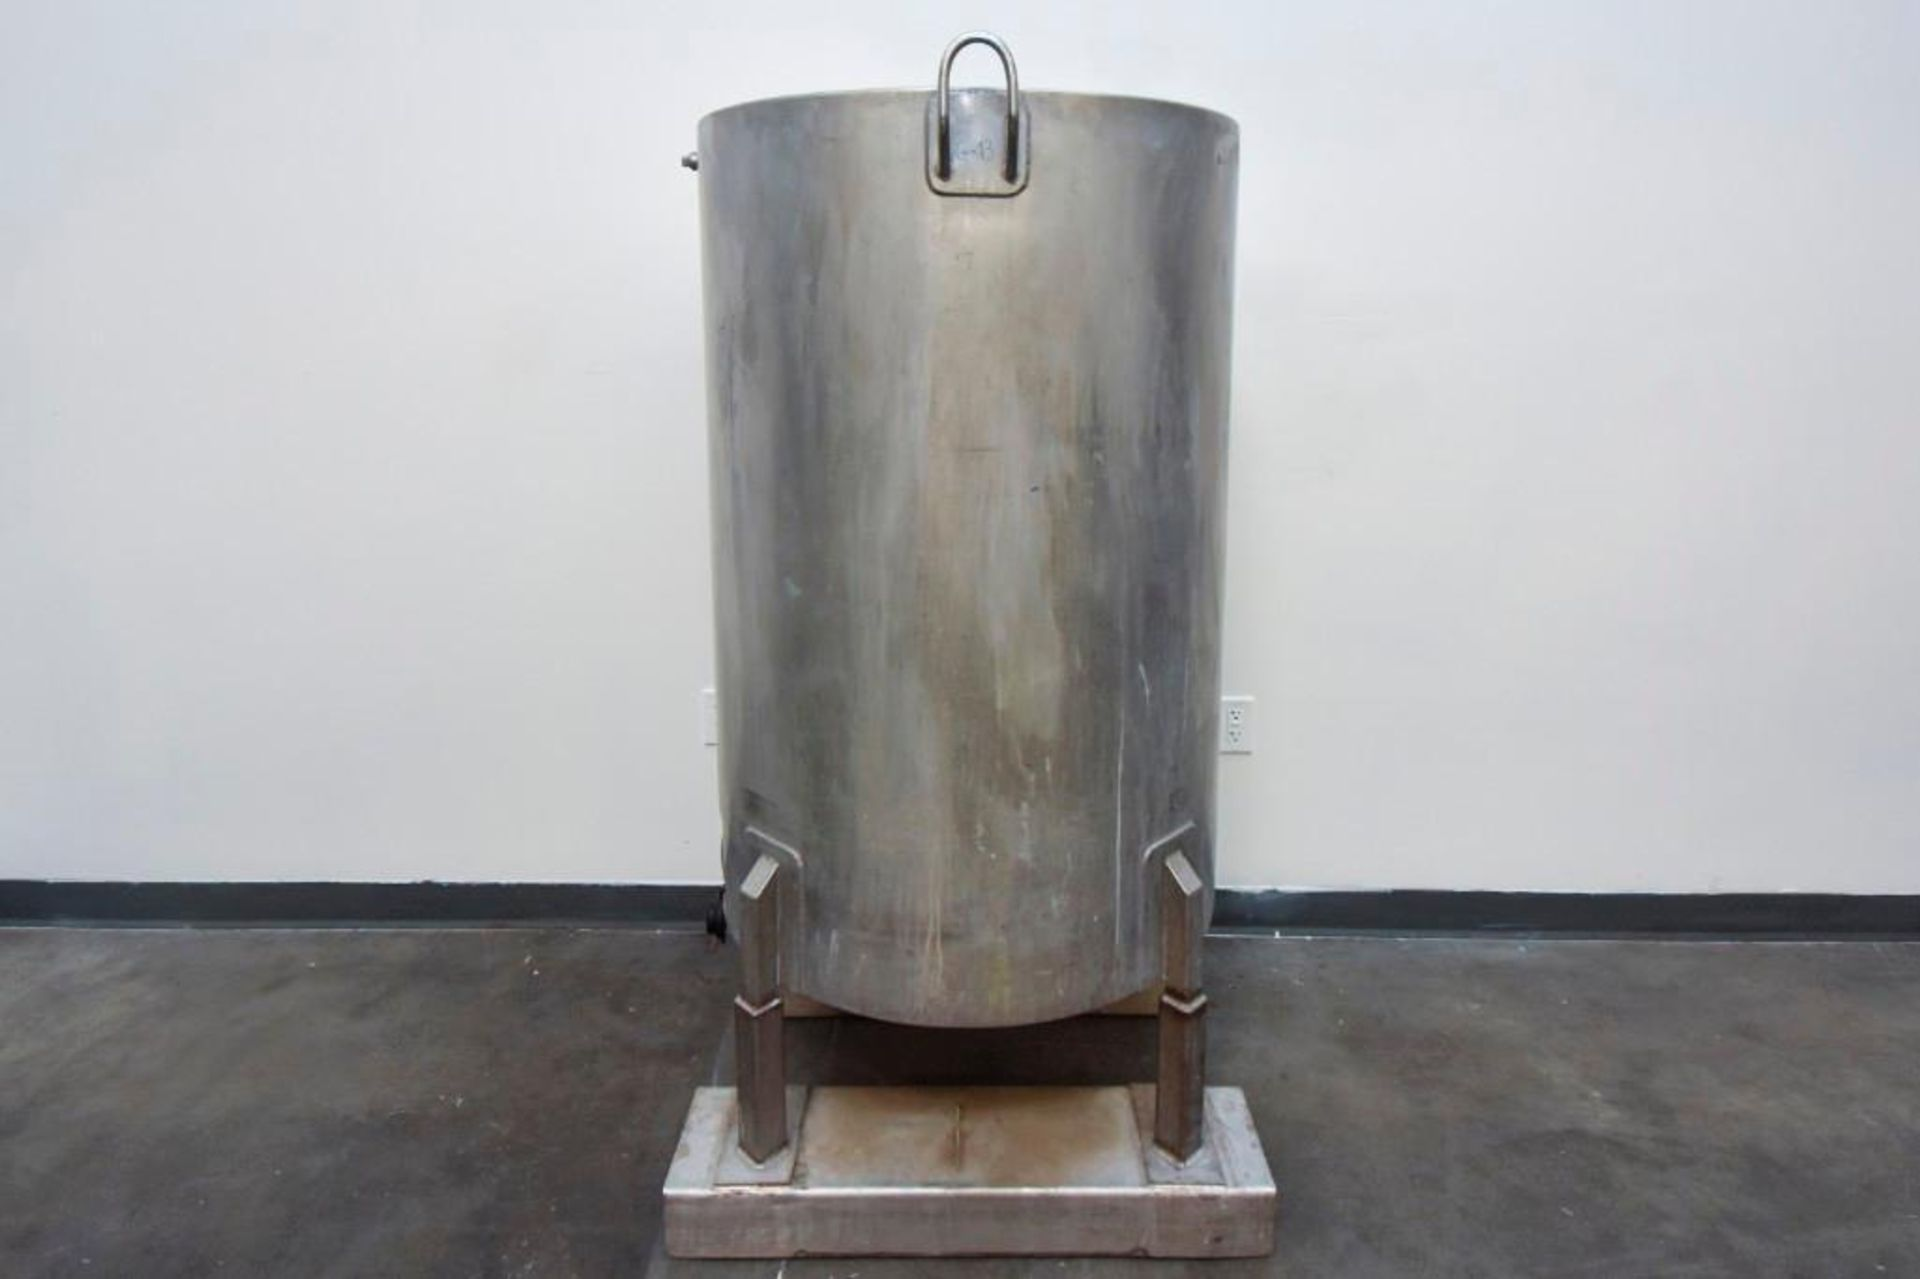 Jacketed Stainless Steel Holding Tank 340L - Image 3 of 11